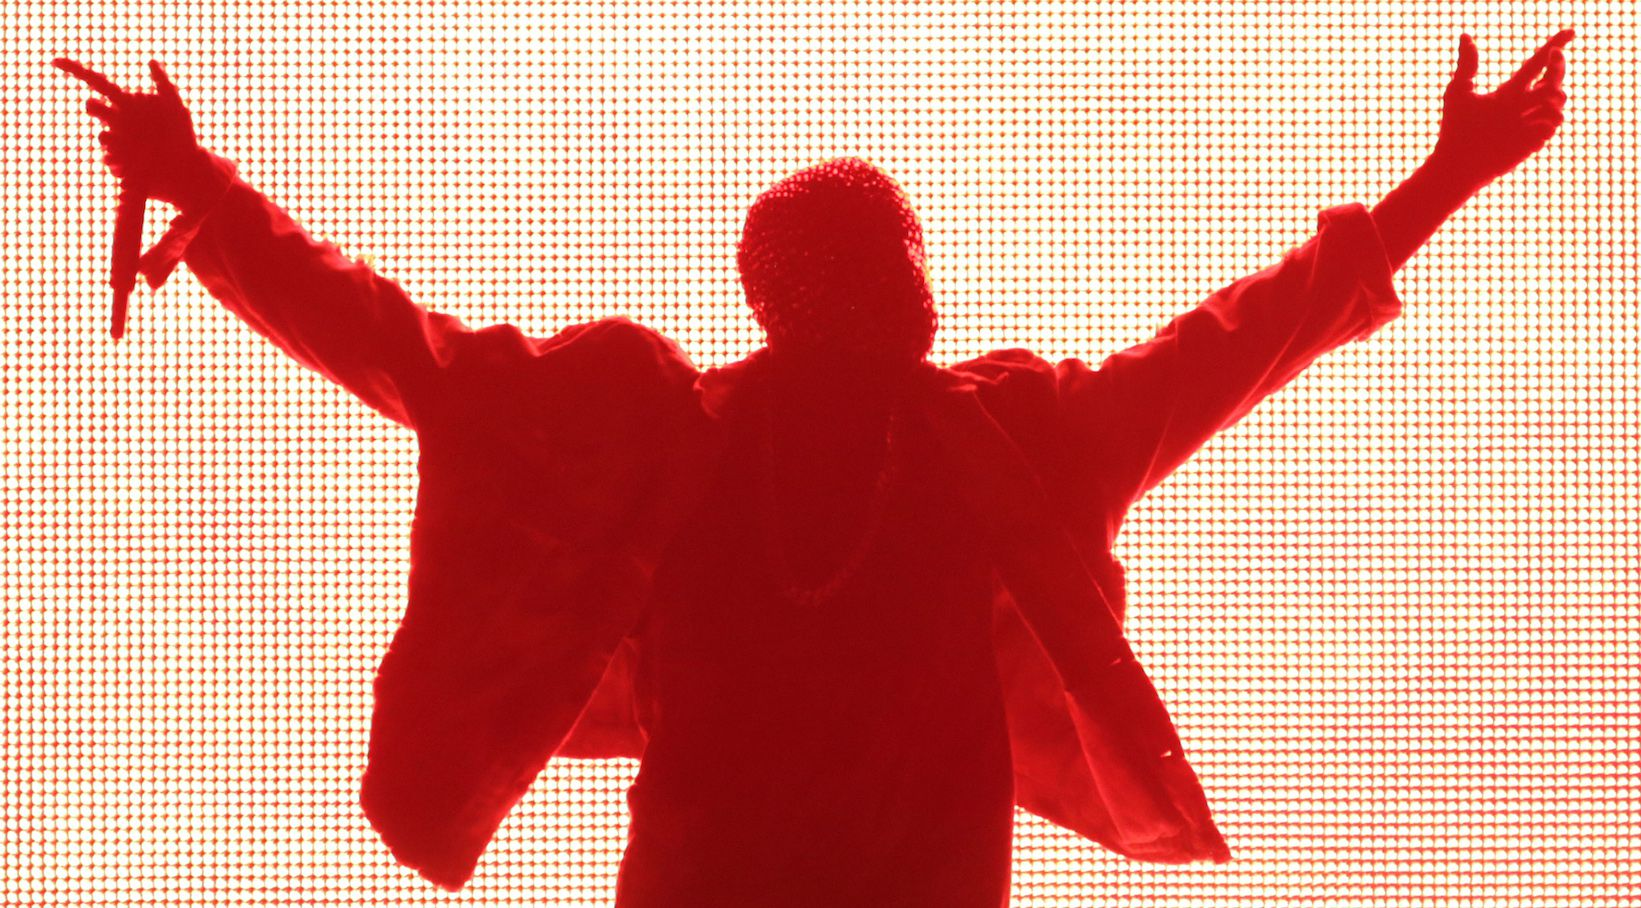 Rapper Kanye West performs during the Made in American music festival in Los Angeles, California August 31, 2014. REUTERS/Jonathan Alcorn  (UNITED STATES - Tags: ENTERTAINMENT TPX IMAGES OF THE DAY) - RTR44GWB